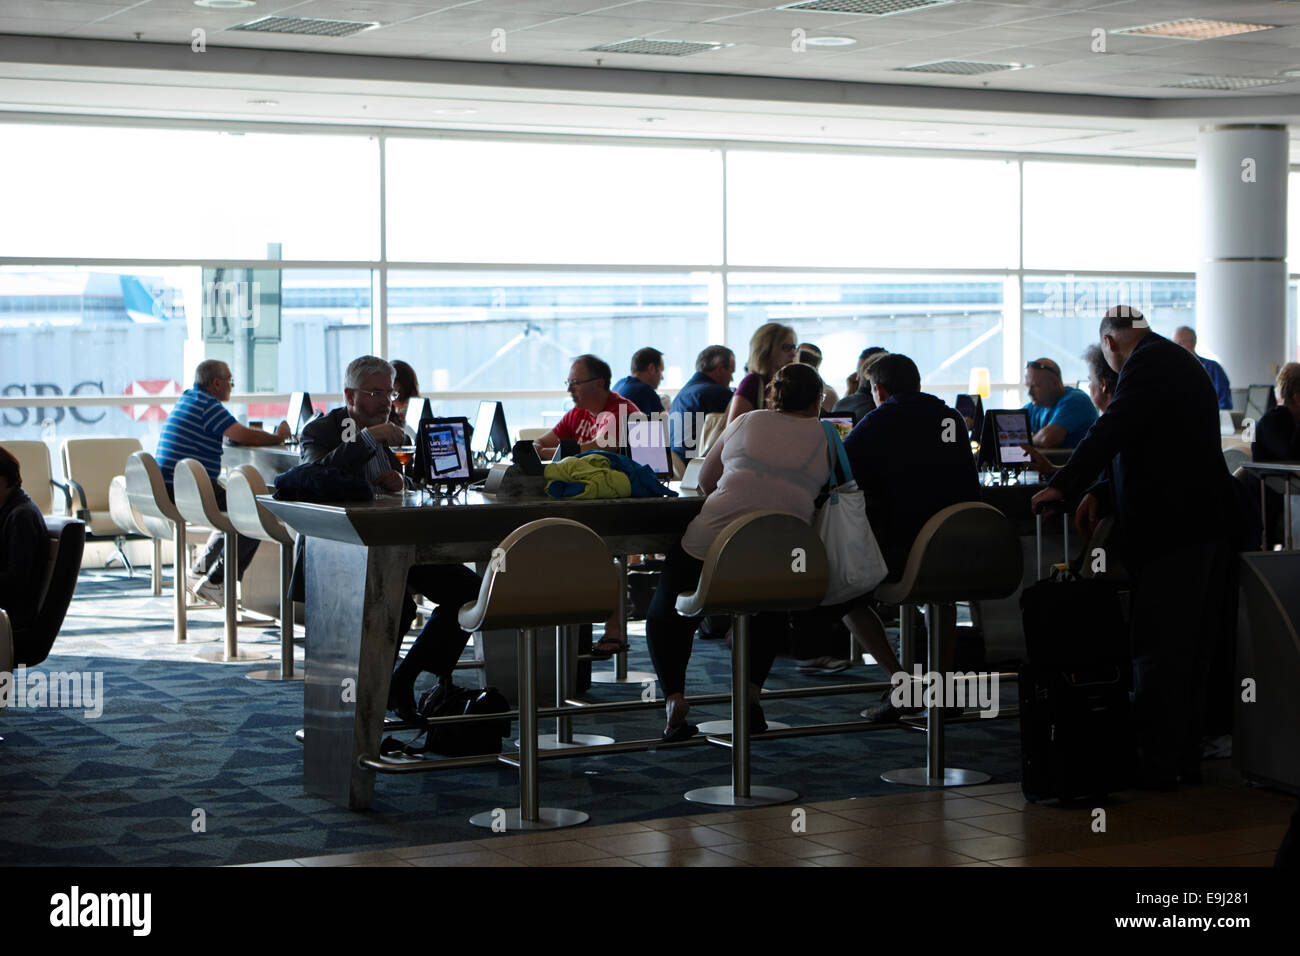 Les passagers utilisant des bornes wifi gratuitement à la borne 3 de l'aéroport international Pearson Photo Stock